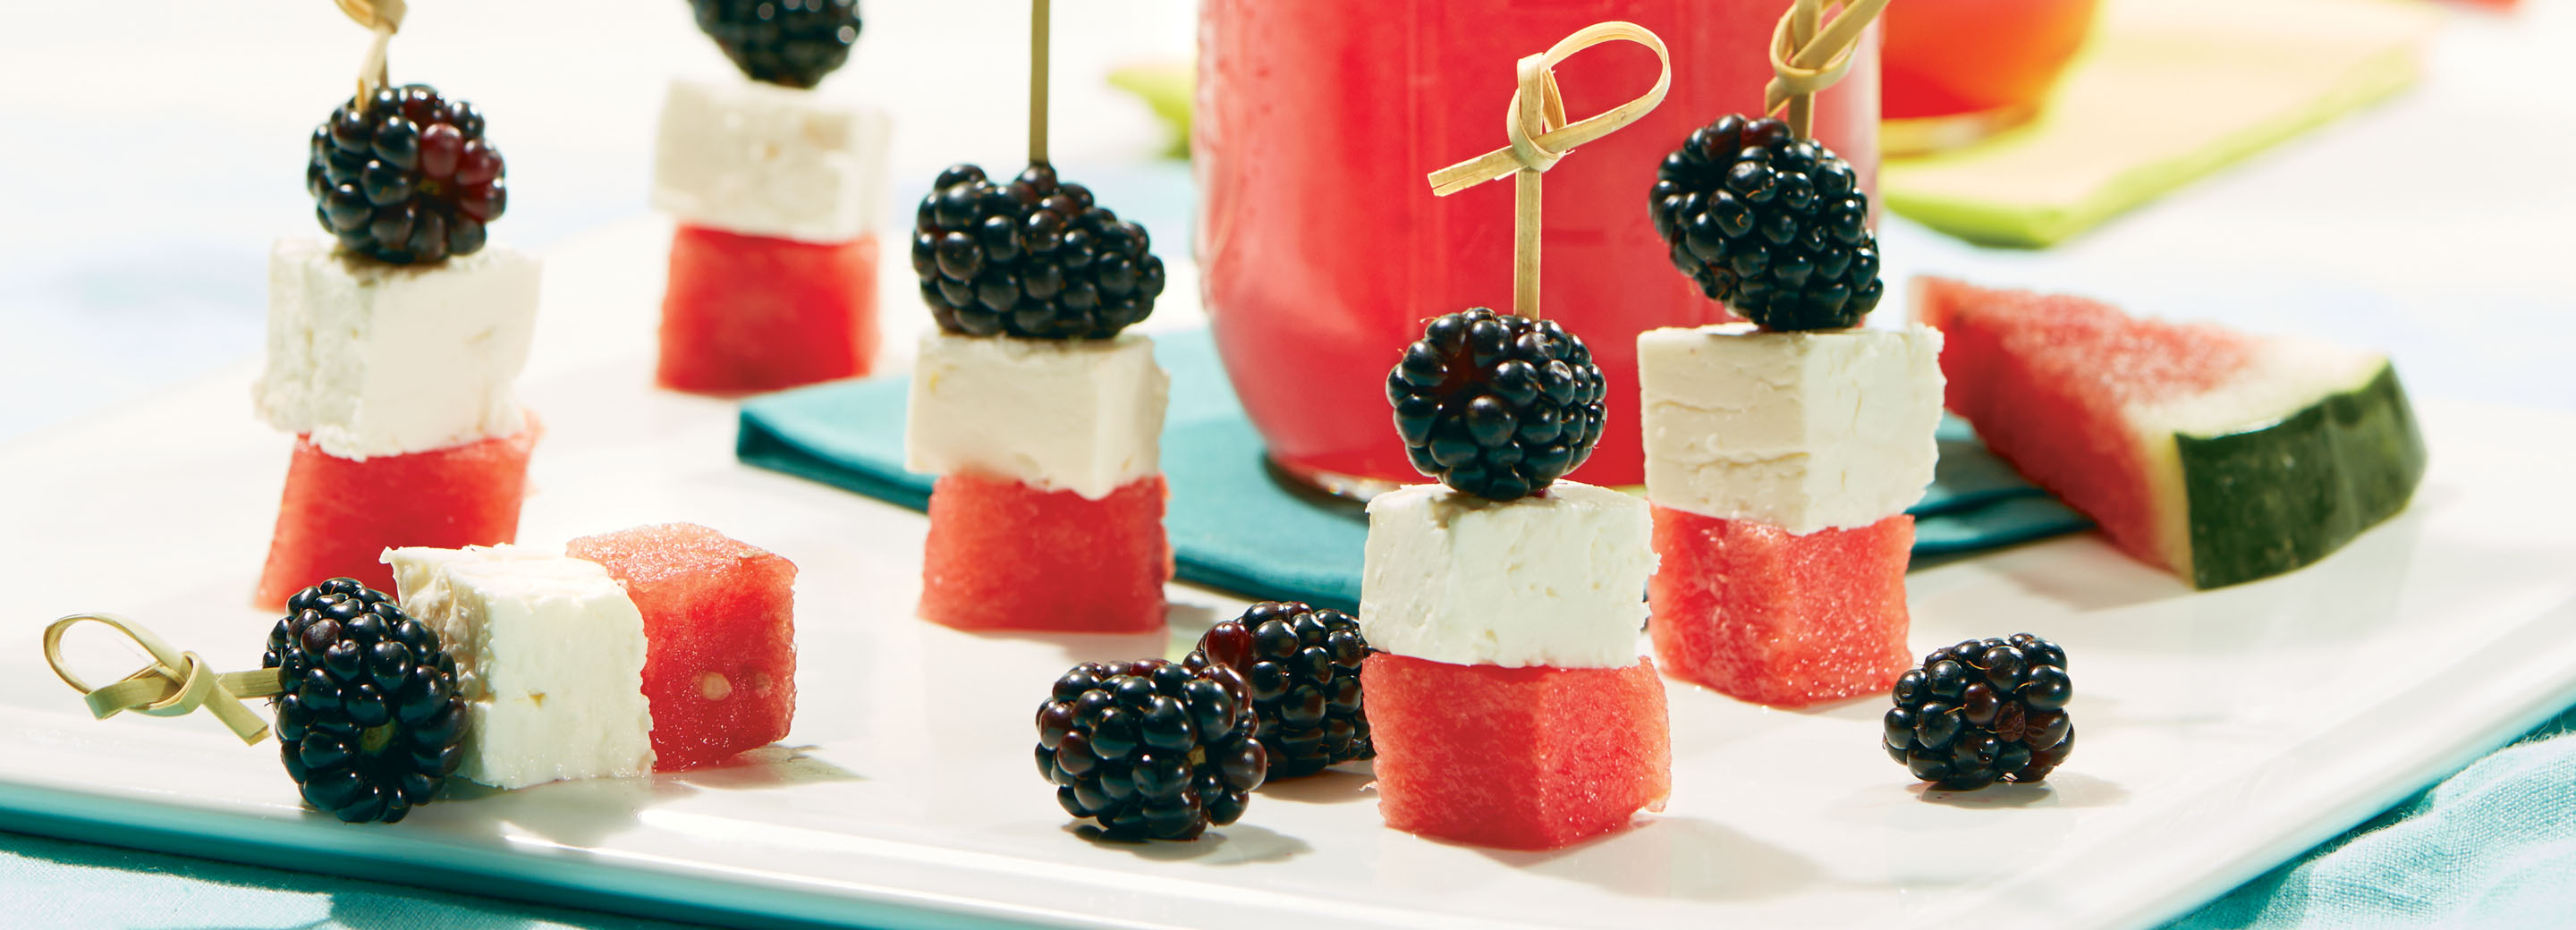 Watermelon, feta and blackberry skewers